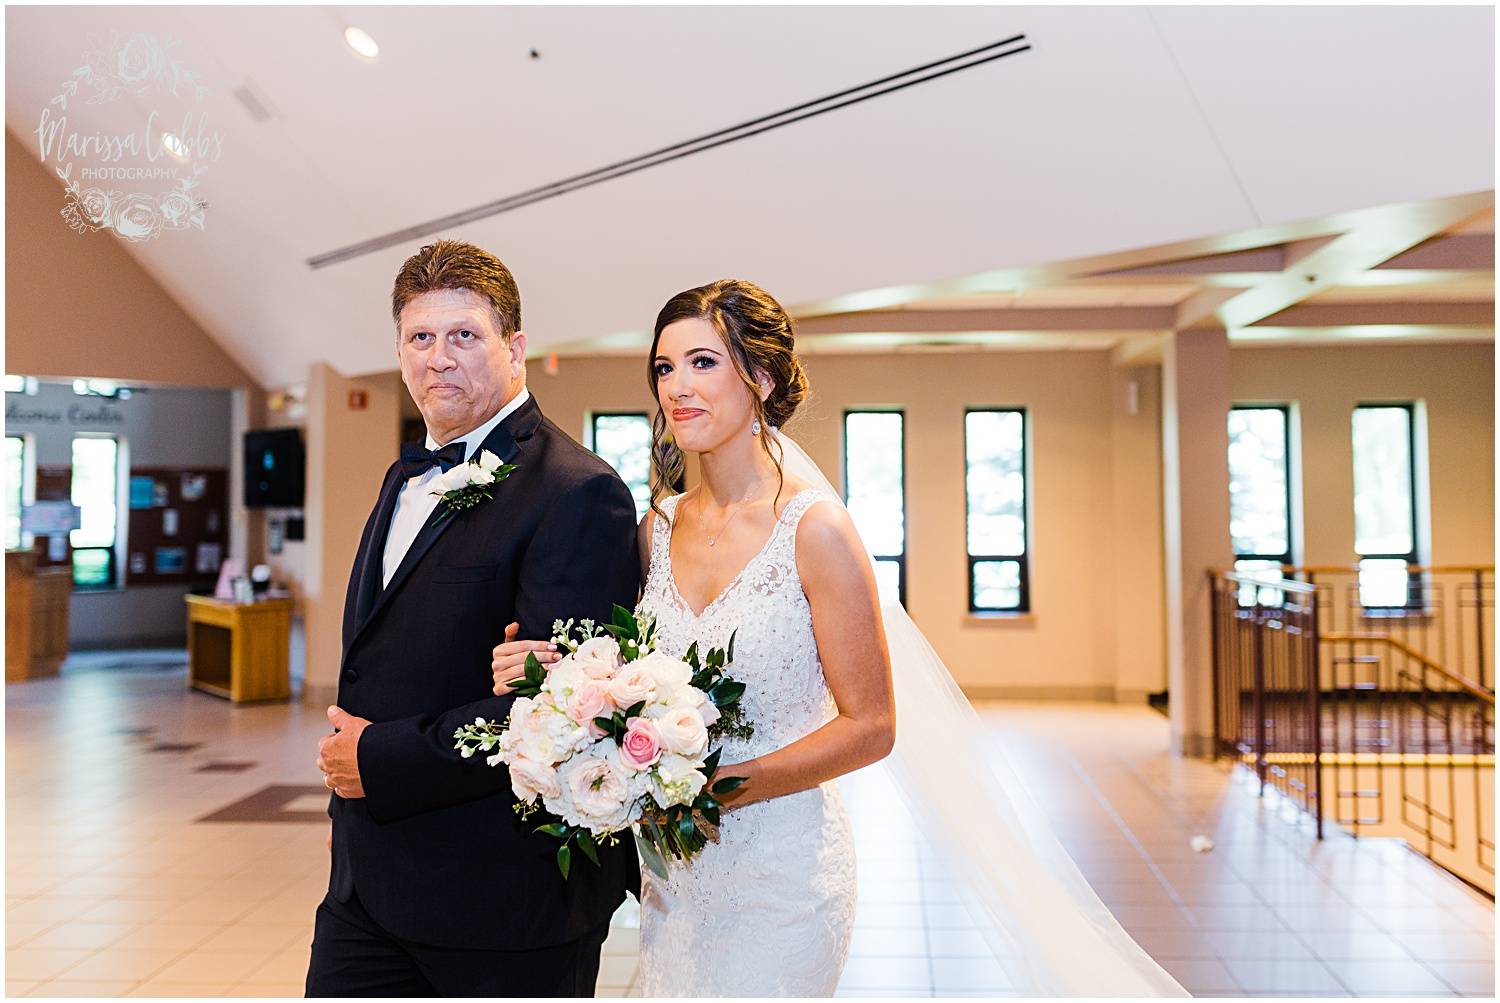 MEGAN & DEREK WEDDING BLOG | MARISSA CRIBBS PHOTOGRAPHY_8129.jpg